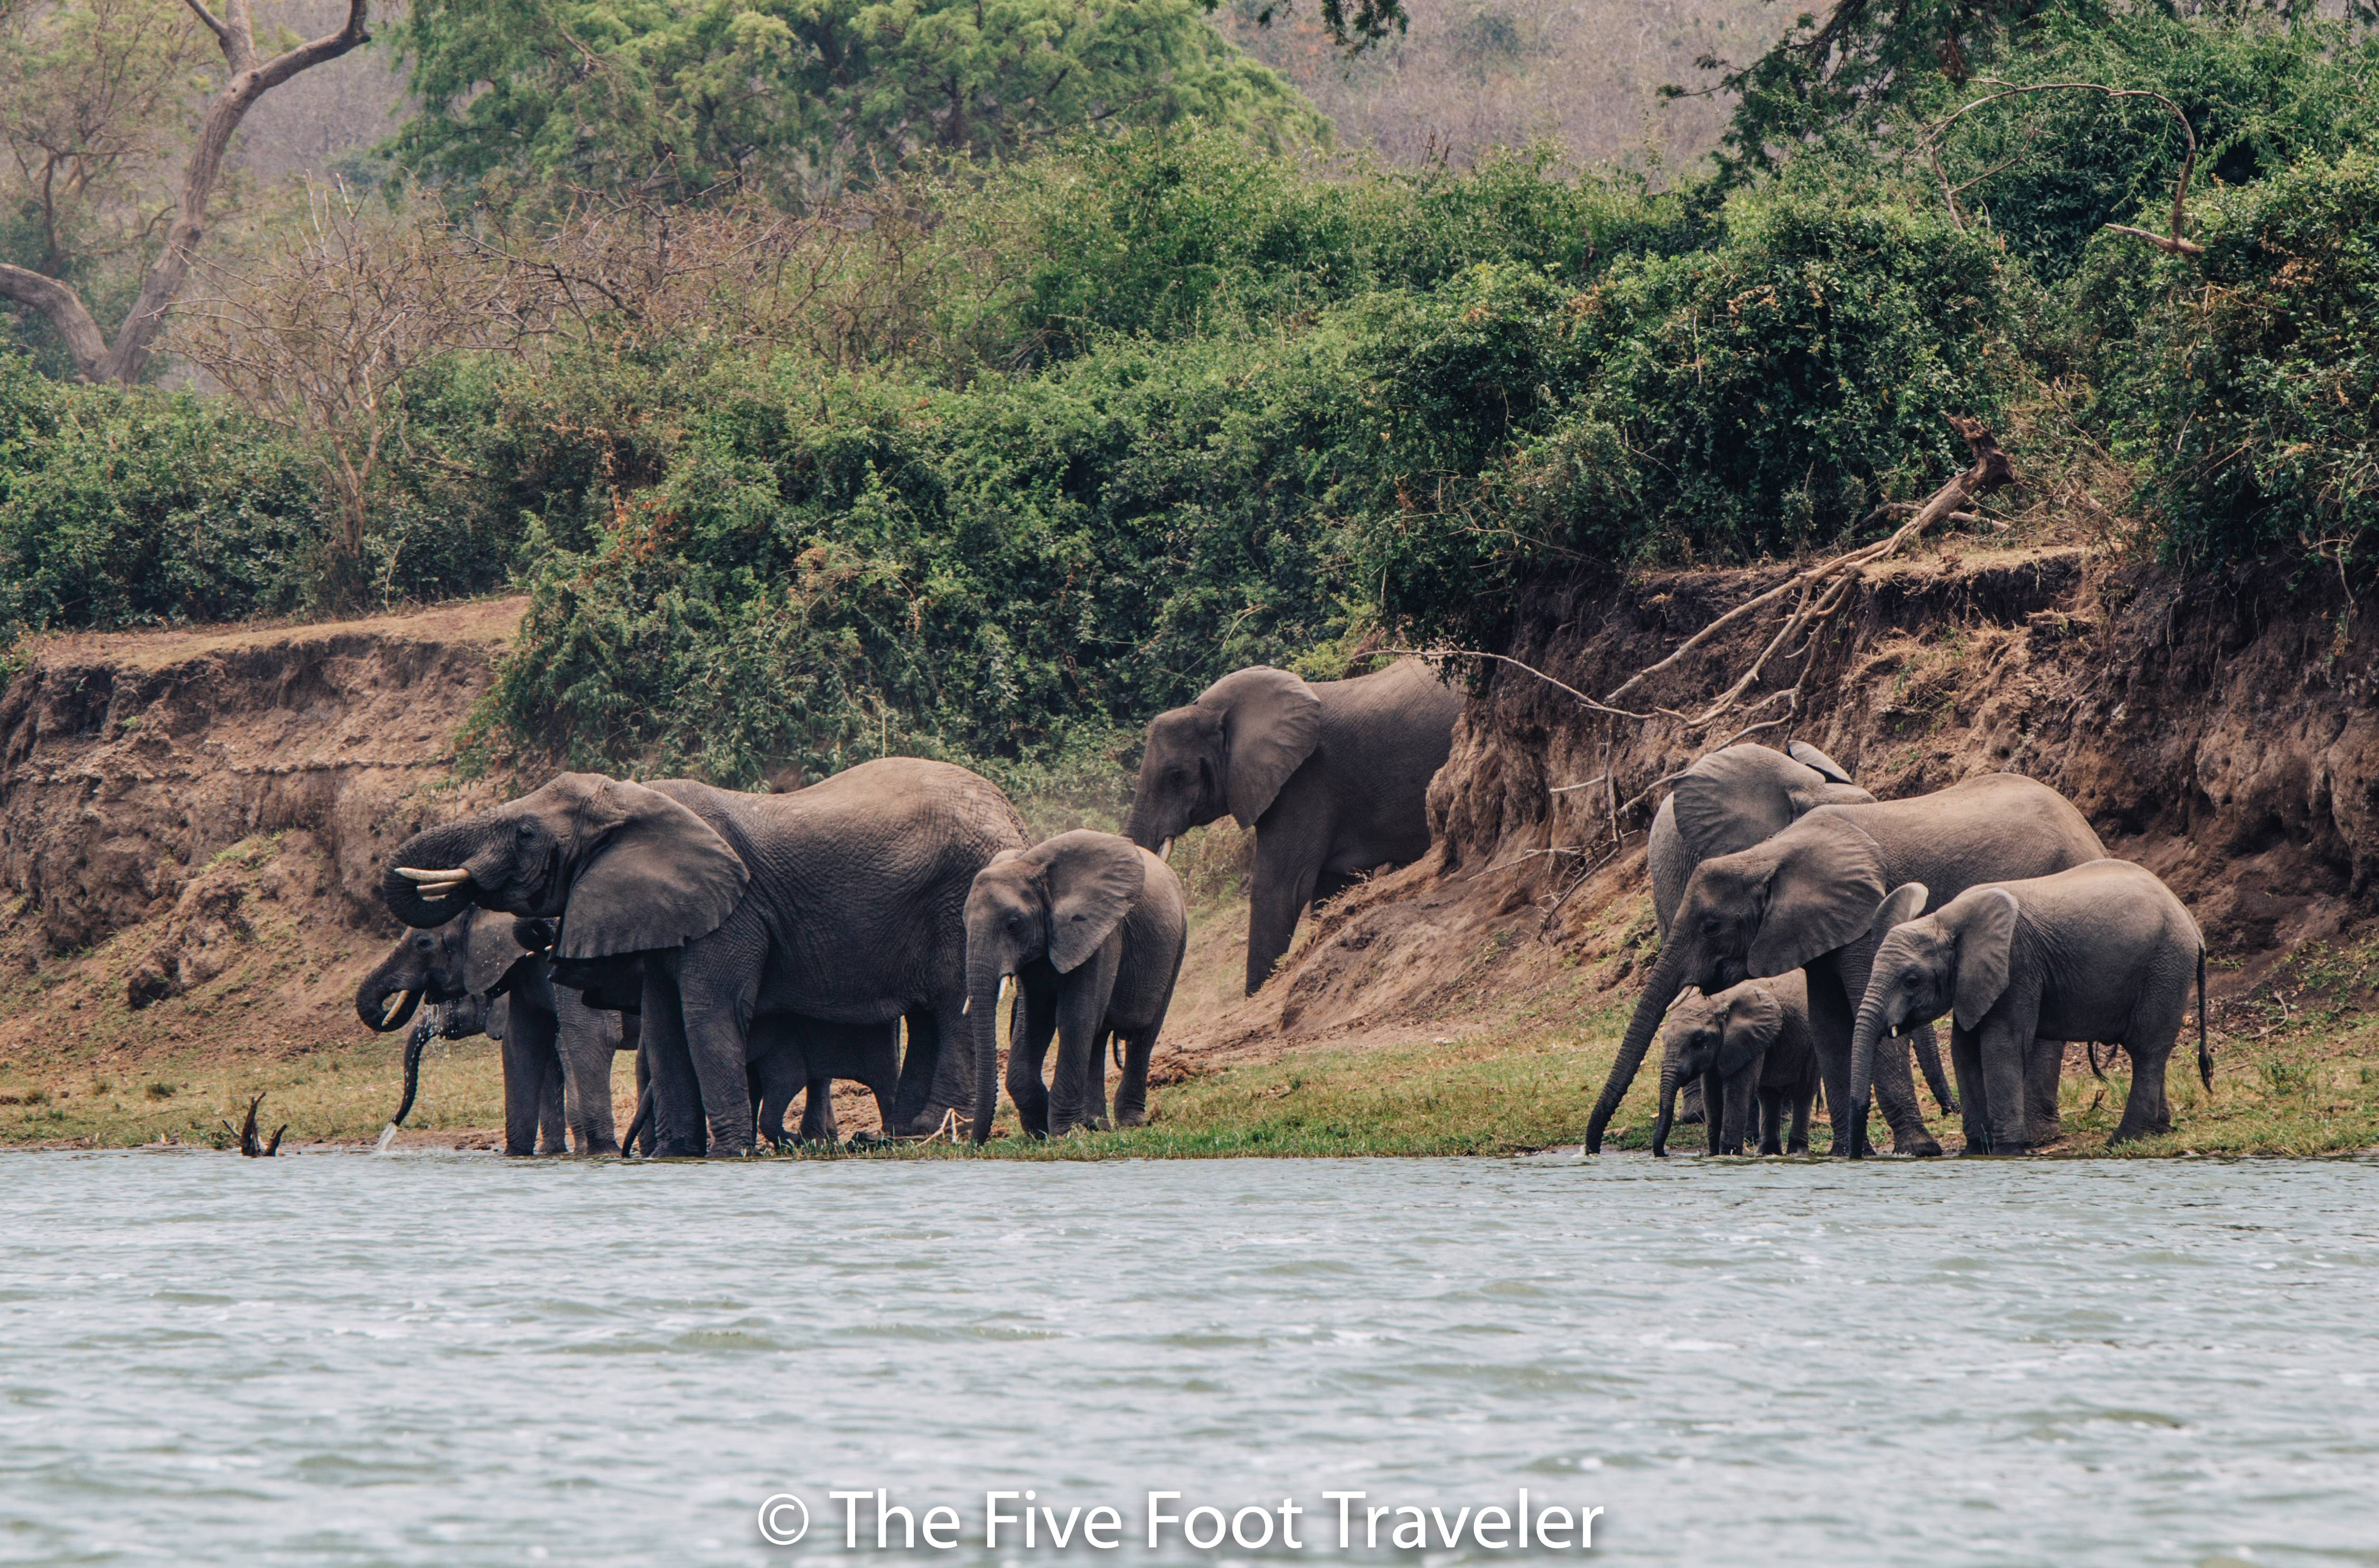 In Queen Elizabeth National Park, we took a river cruise on a small boat down the Kazinga Channel so we could see the animals from the water. From hippos to crocs to water buffalo and elephants, it was an experience to remember. Read more at www.thefivefoottraveler.com